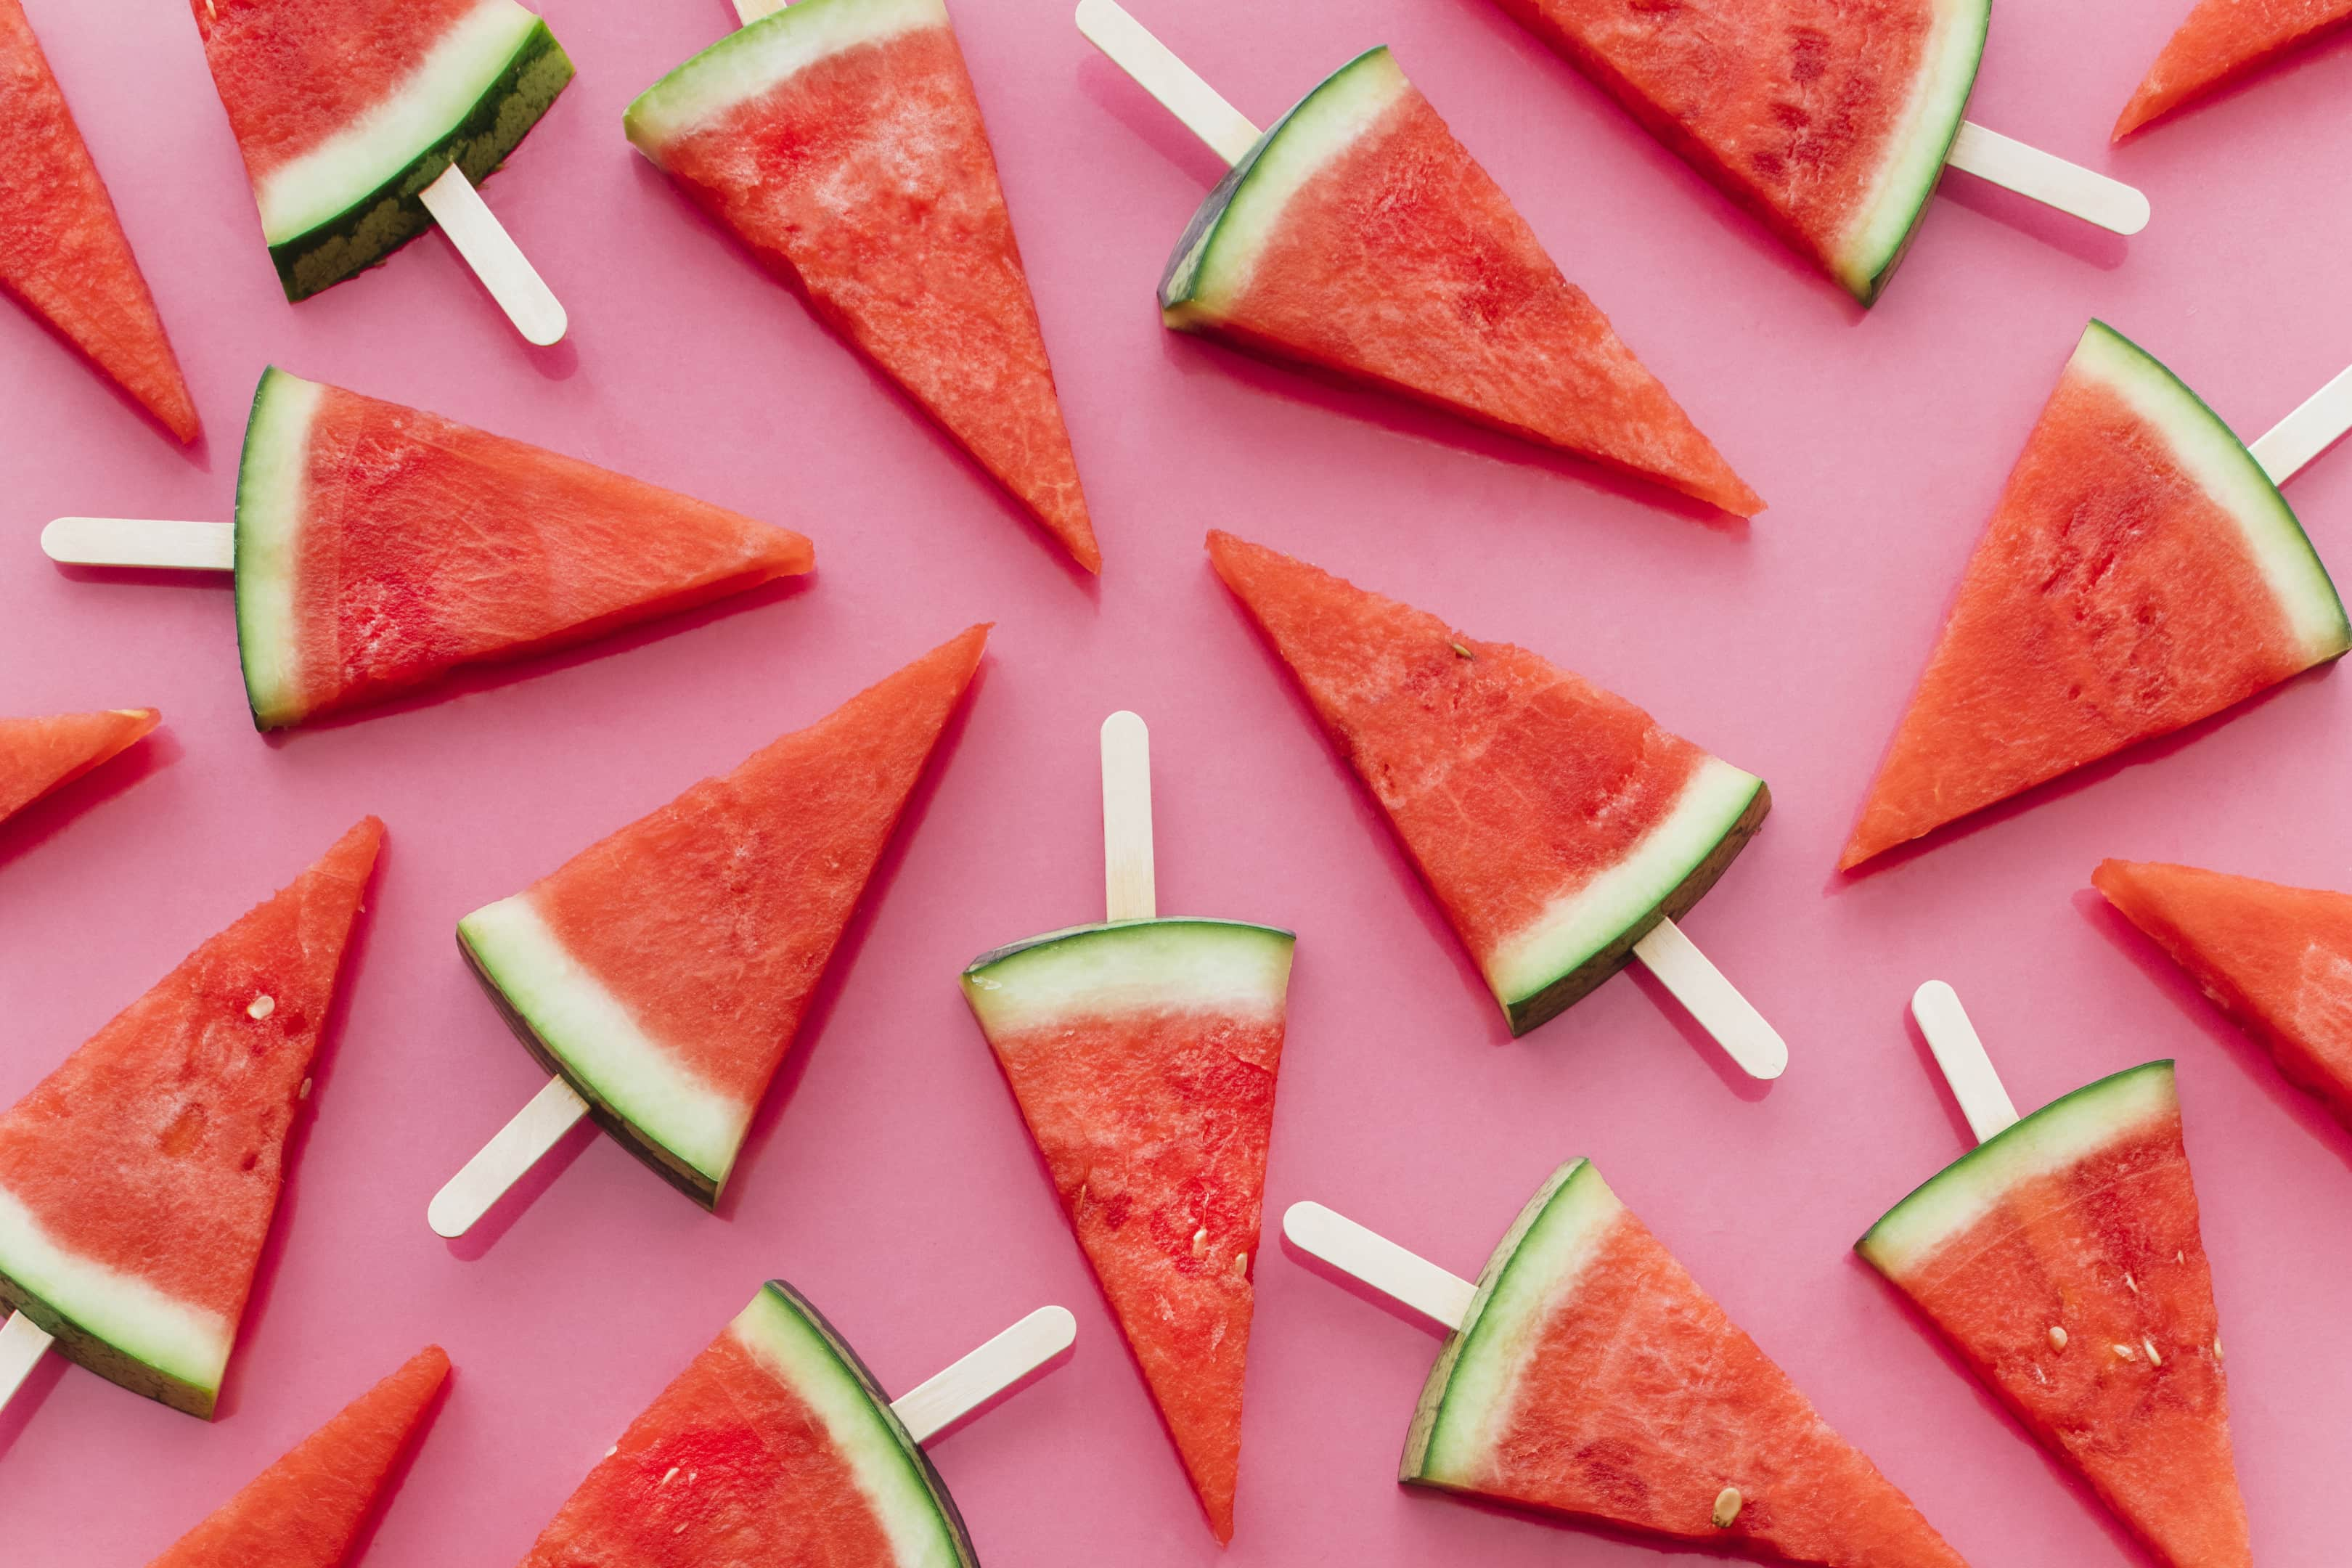 Watermelons on sticks on pink background